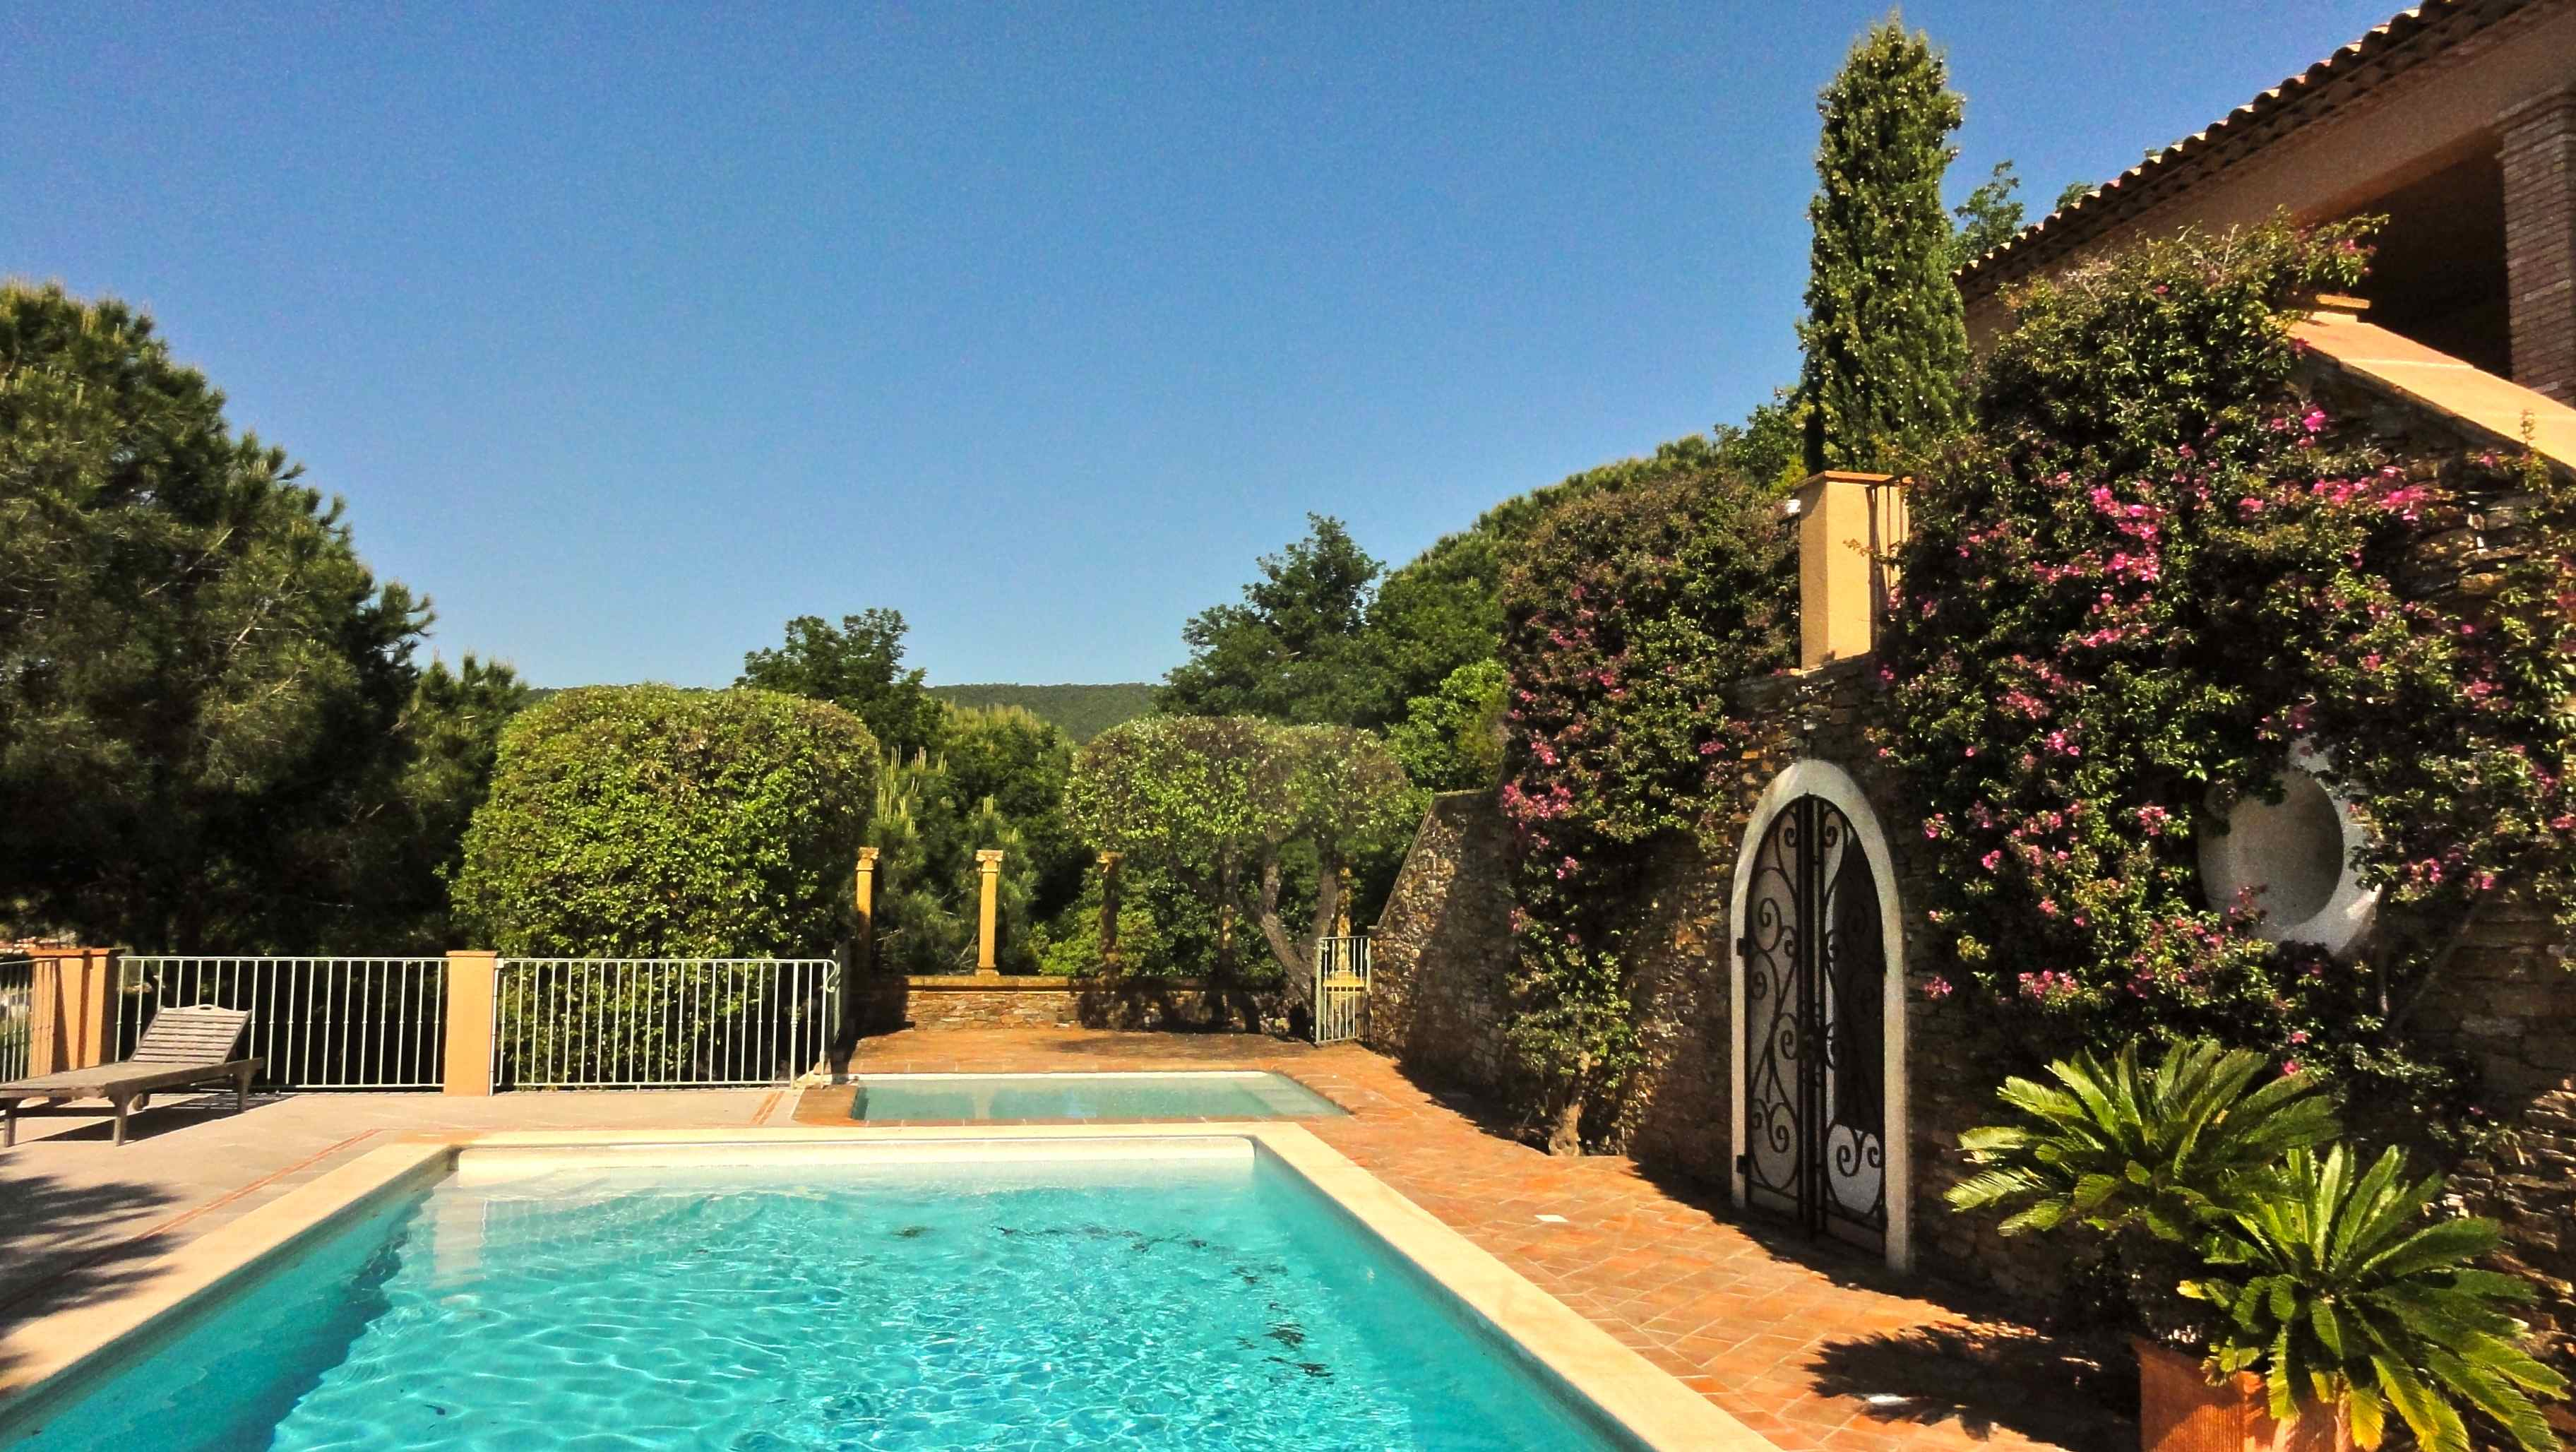 Holiday villa rental in Ramatuelle, near Pampellone beach